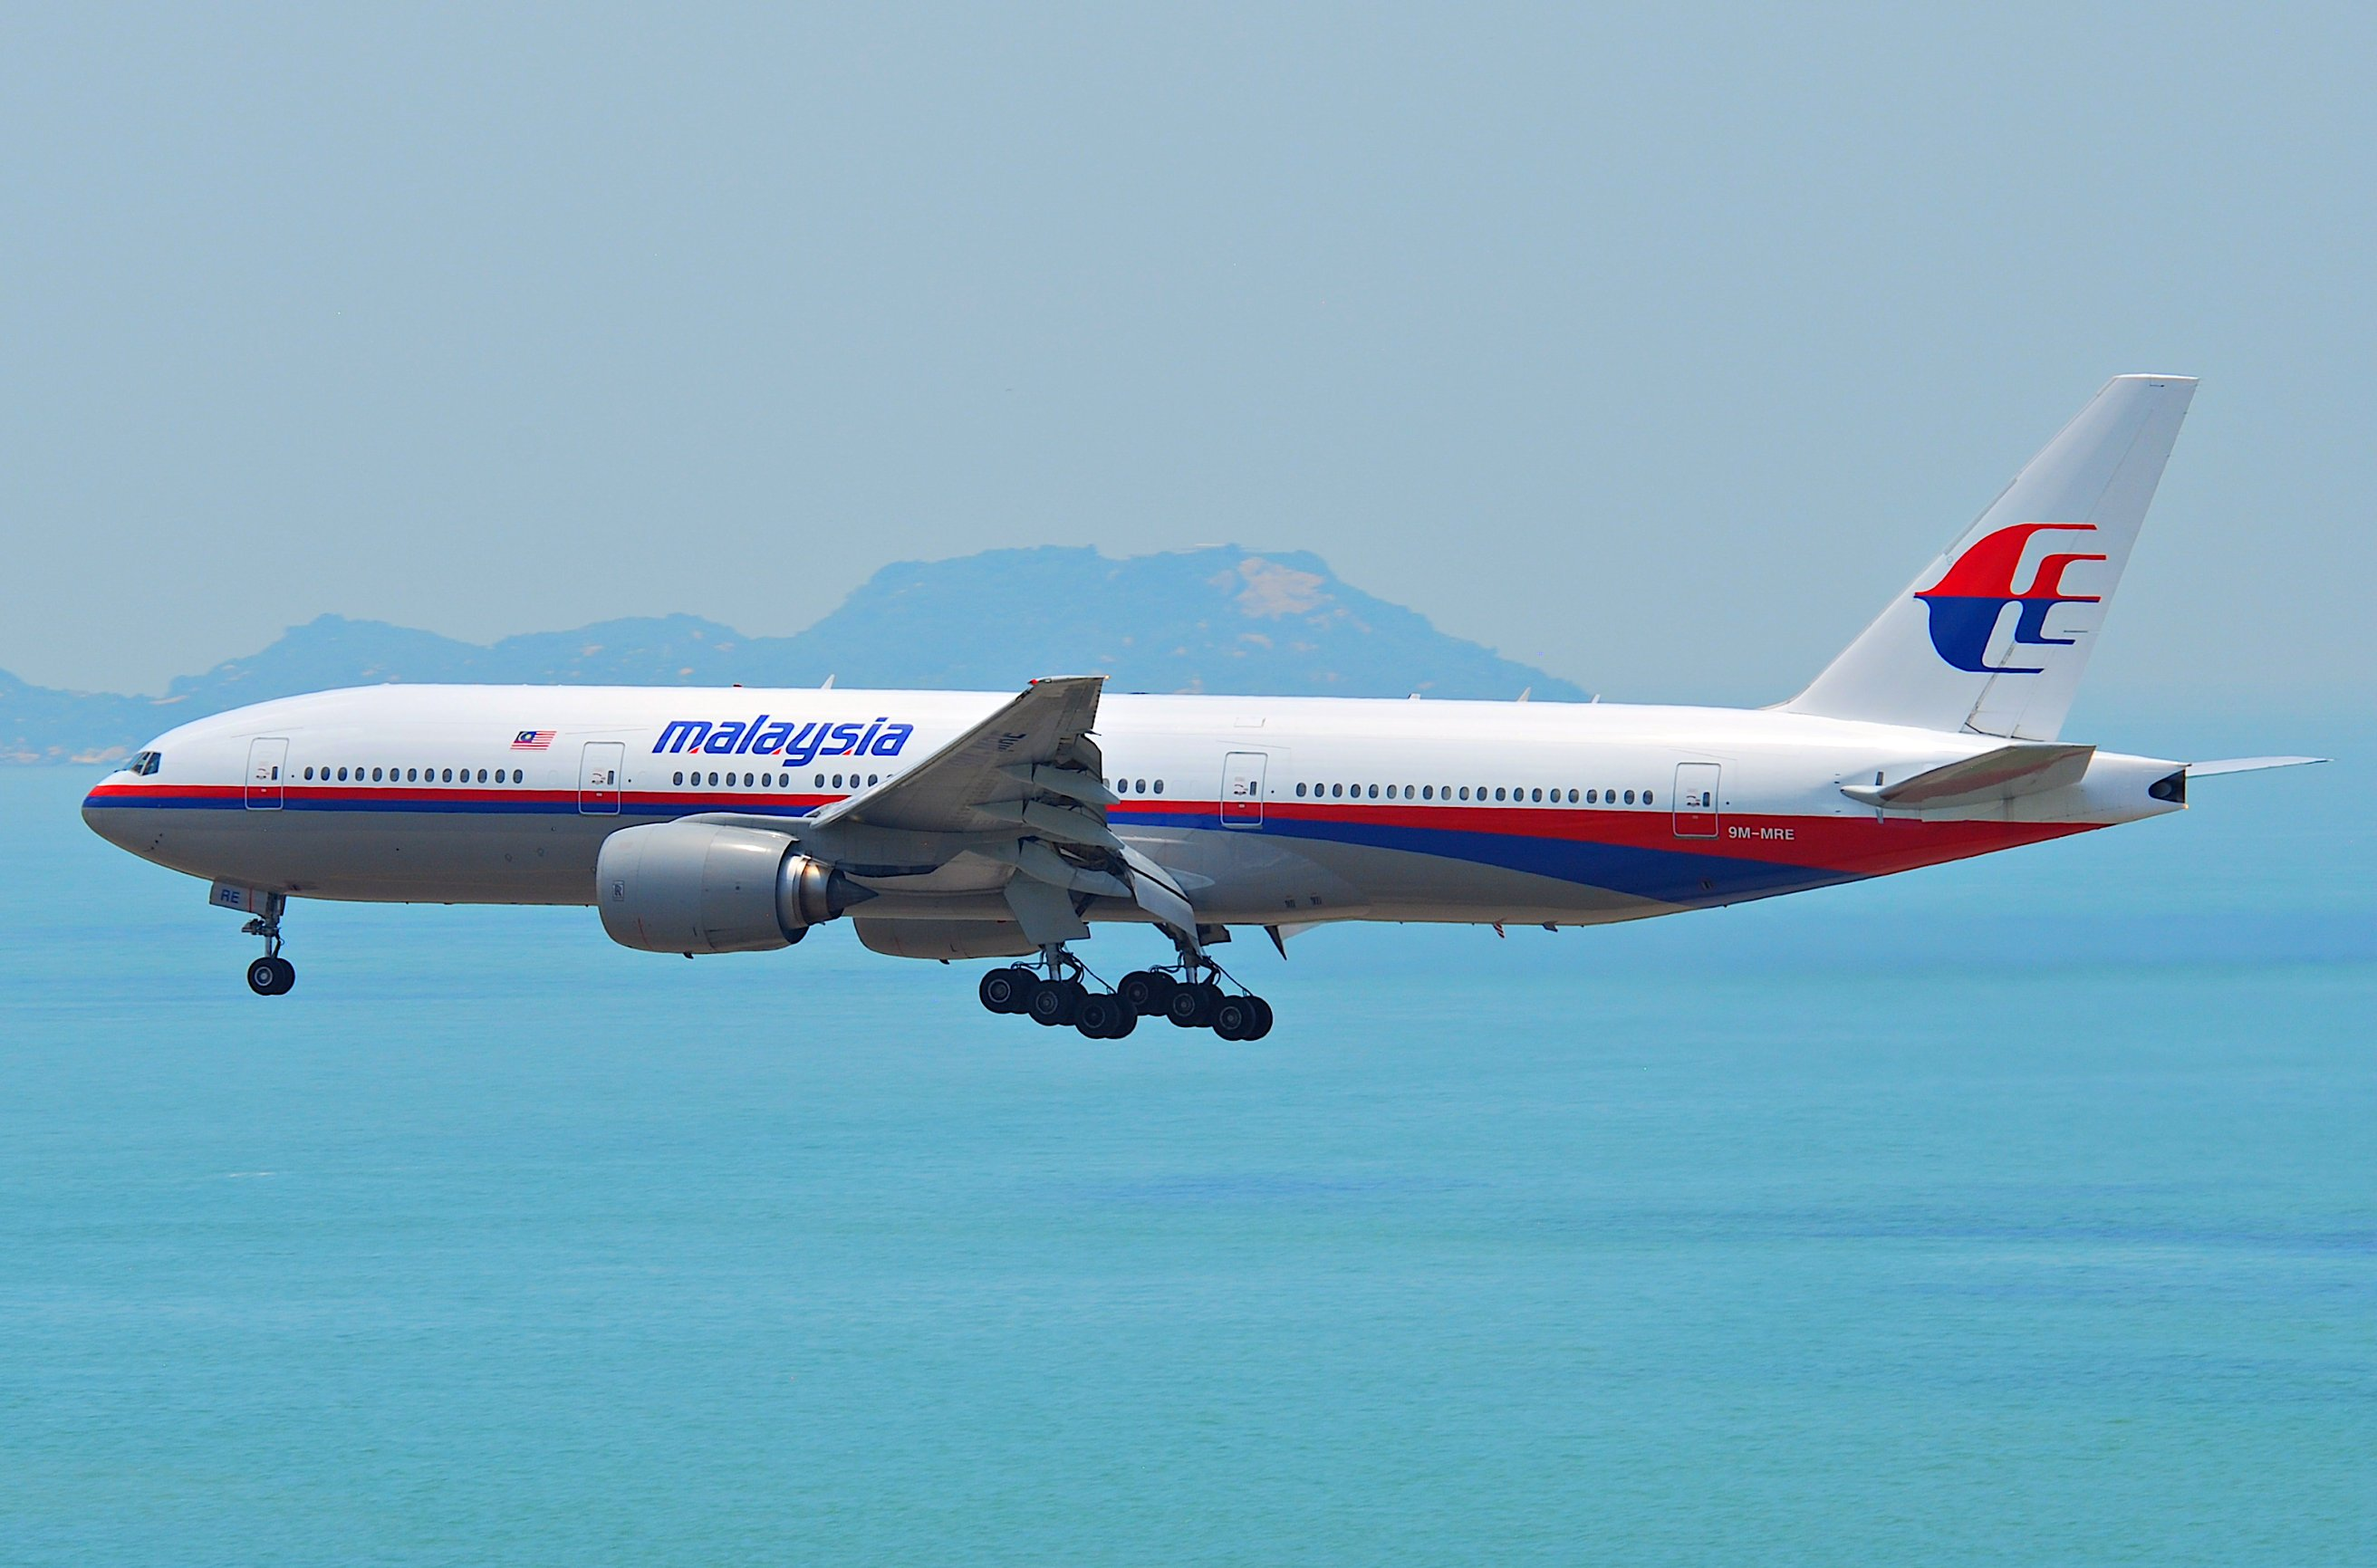 malaysia airlines Find cheap flights and airline tickets google flights helps you compare and track airfares on hundreds of airlines to help you find the best flight deals.